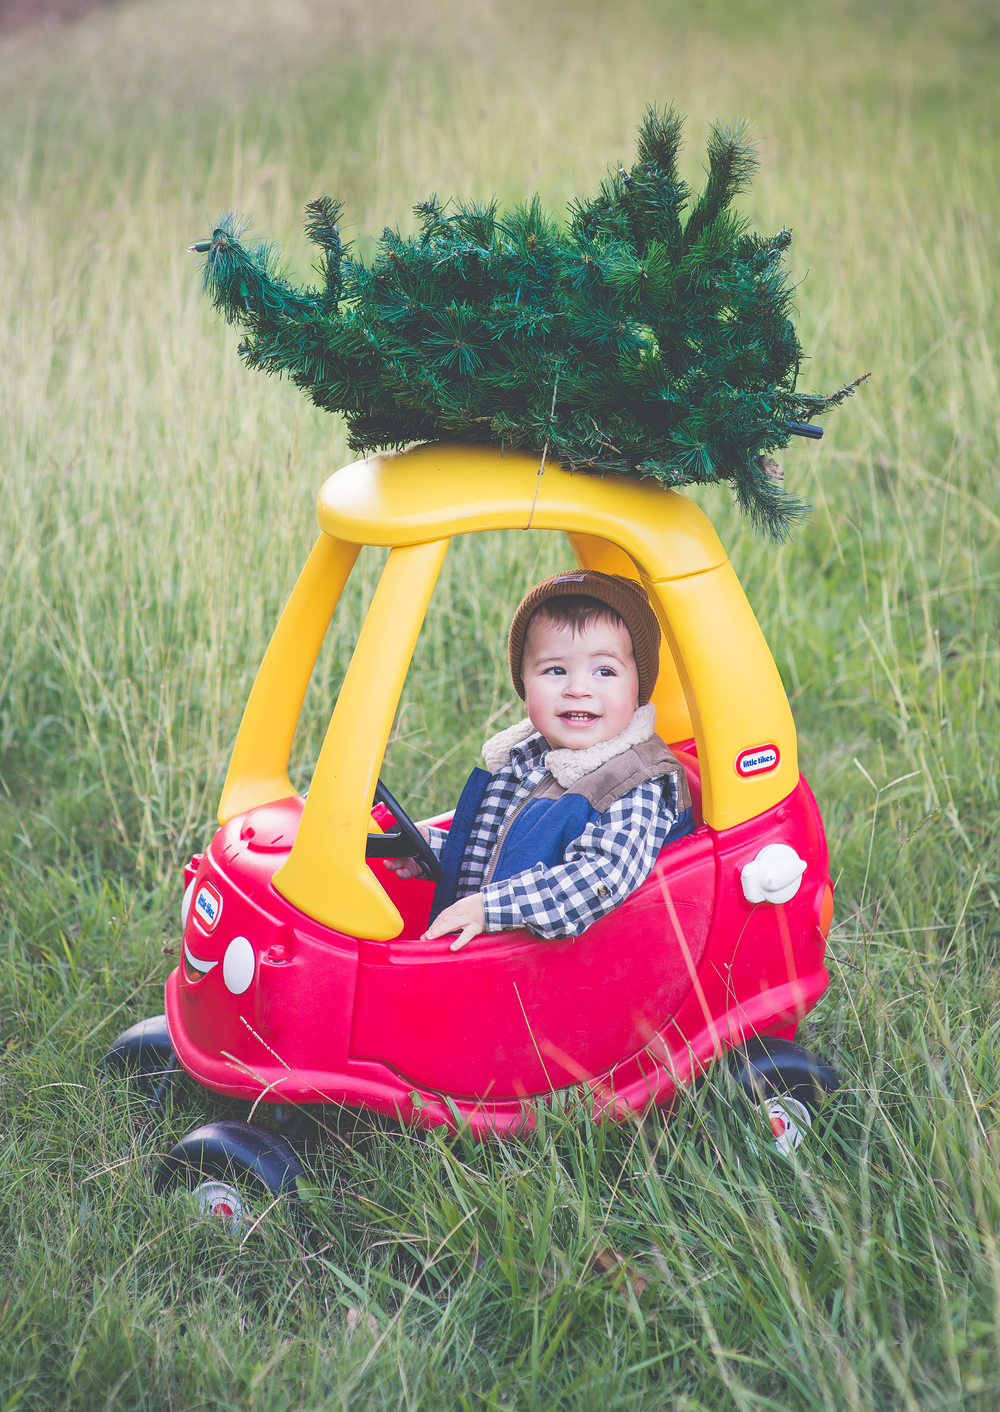 Lumberjack Christmas 2014 | Laraina Hase Photography | Little Boy Christmas Pictures | Christmas Tree on Car